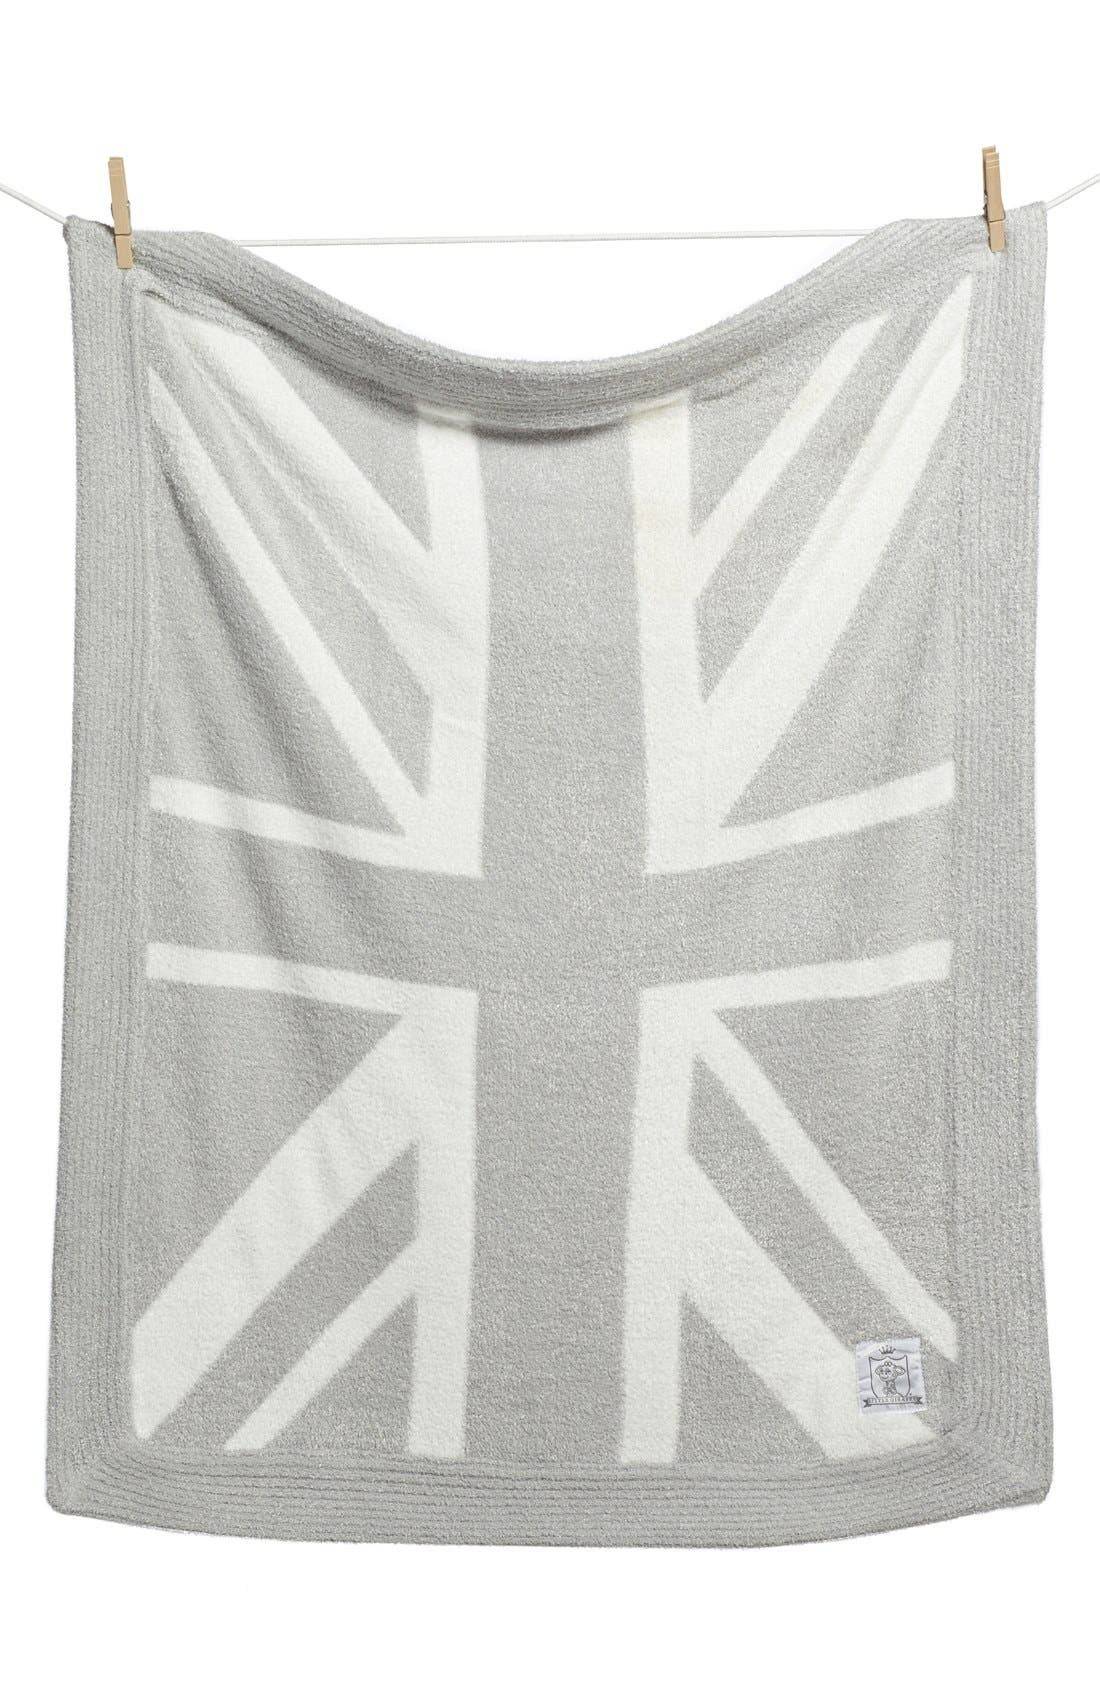 'Dolce Union Jack' Blanket,                         Main,                         color, SILVER